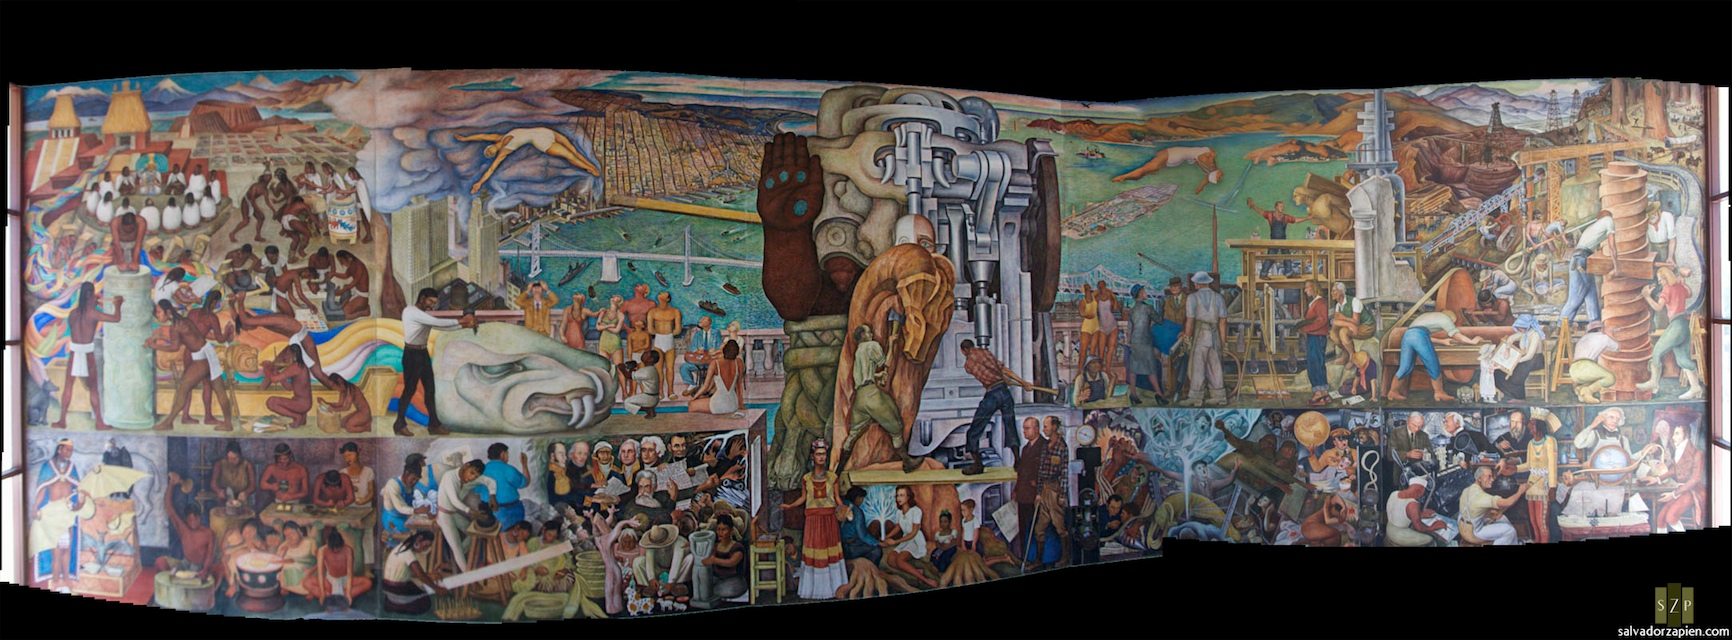 Diego rivera murals in san francisco 28 images ross for Diego rivera mural san francisco